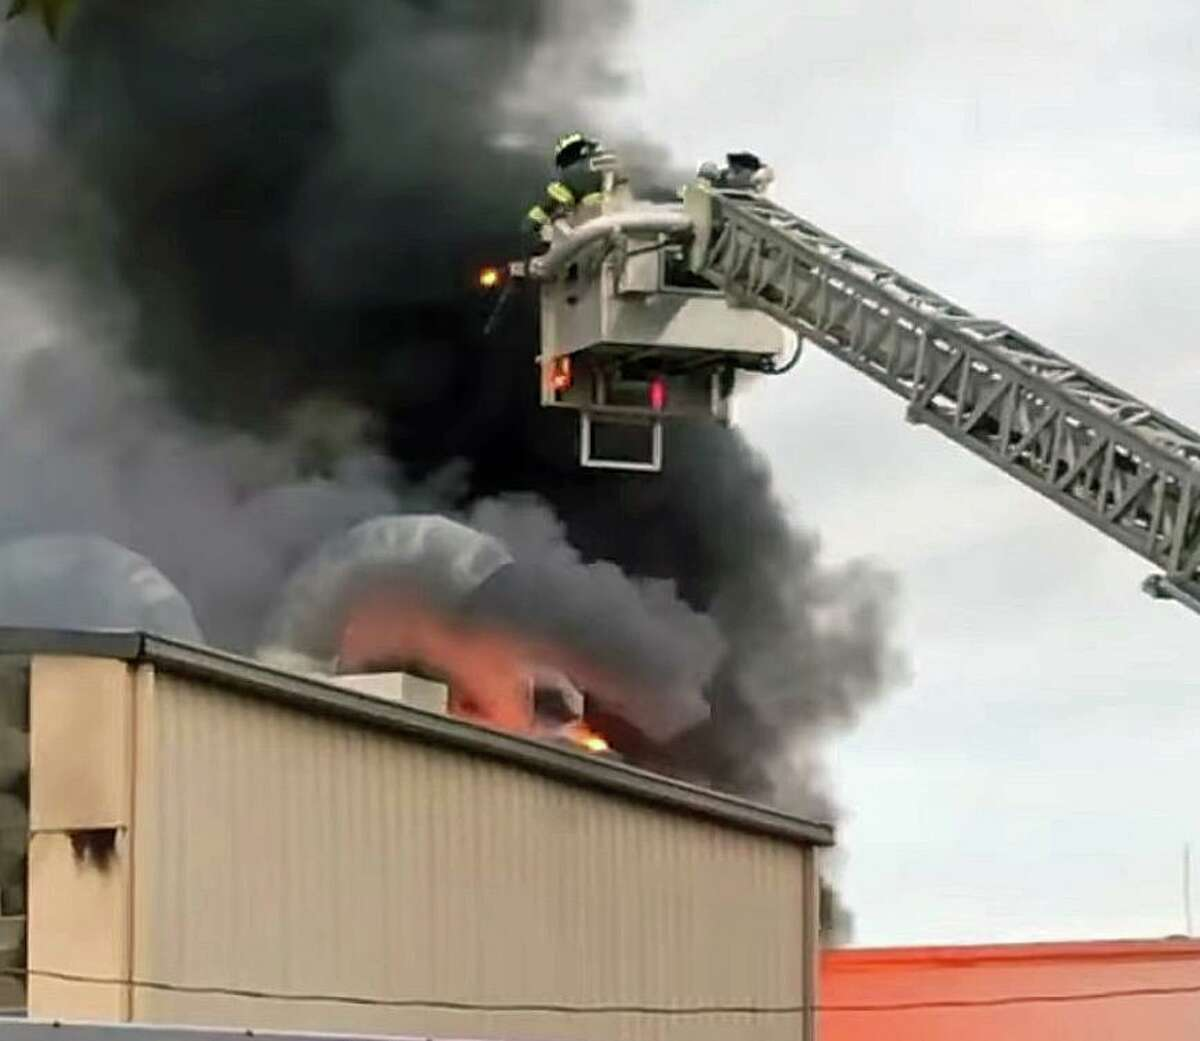 Crews battle a fire in Norwalk, Conn., on Saturday, May 22, 2021.